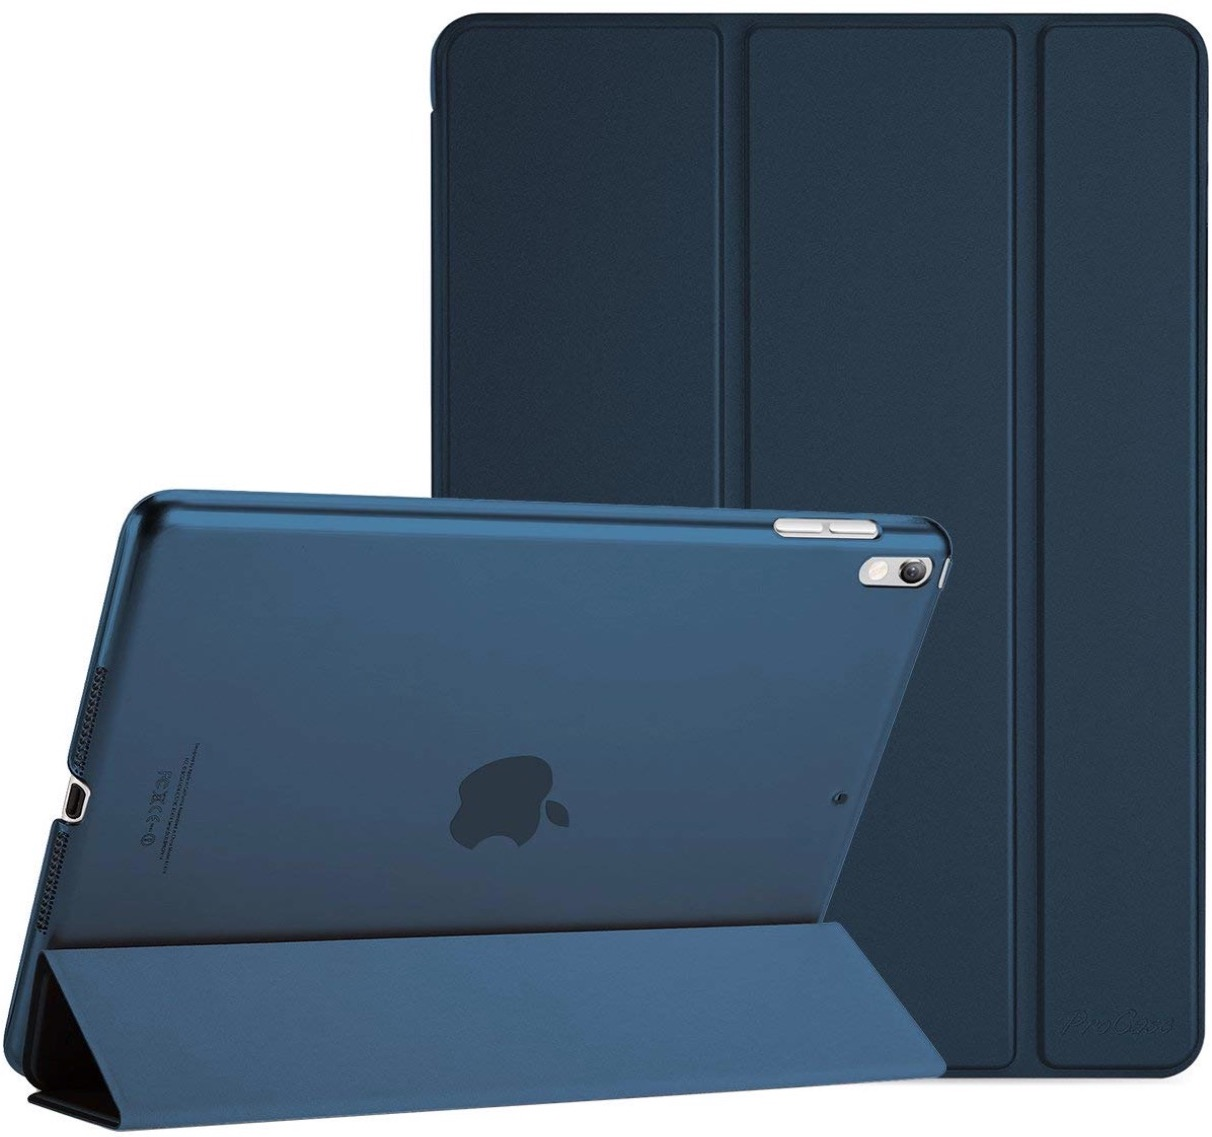 Best cases for the iPad Air 3 in 2019 ...